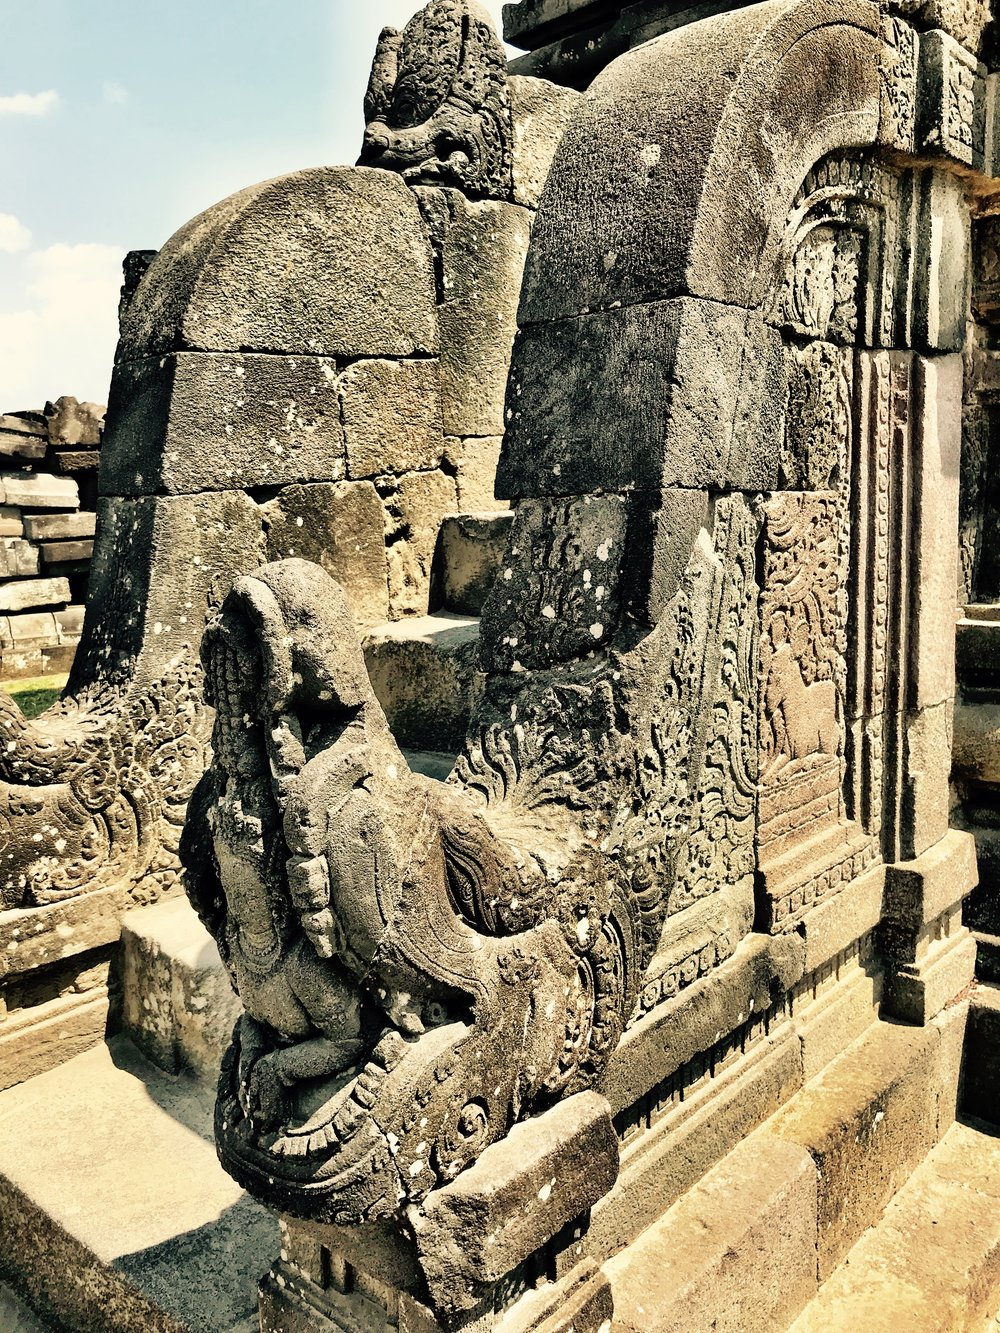 The staircases are carved in the shape of mekara, creatures with other beings coming out of their mouths